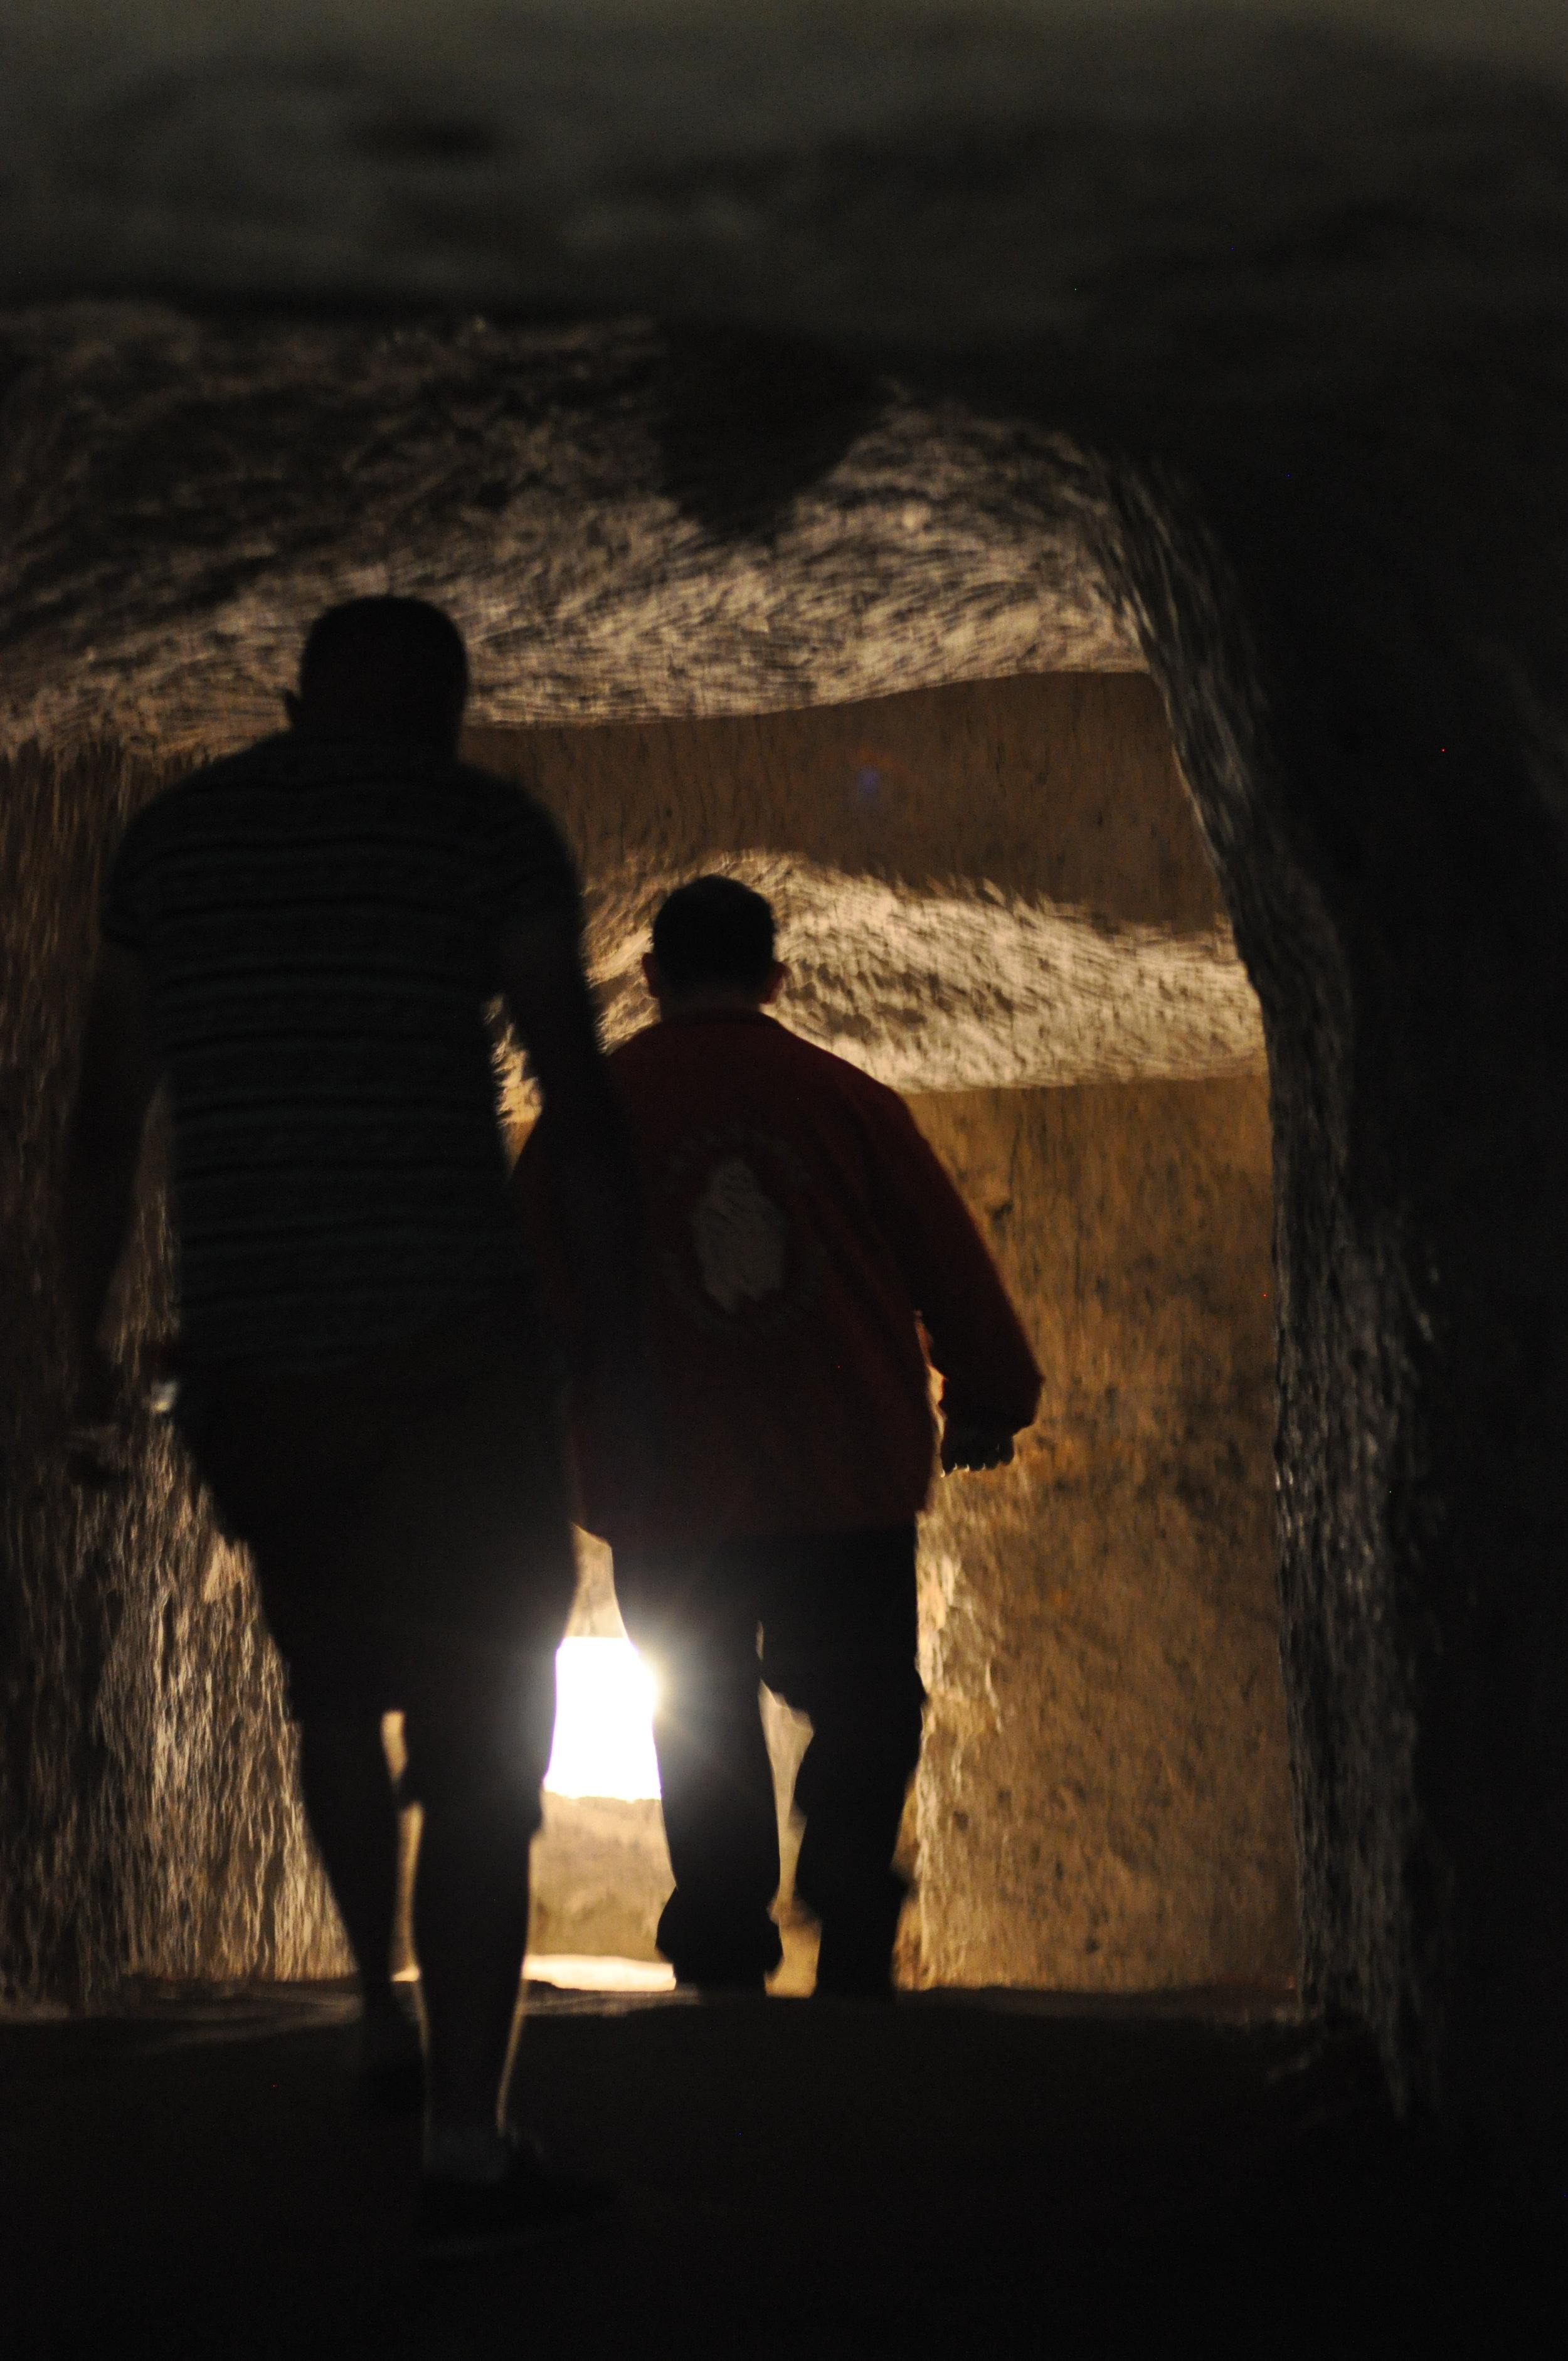 Inside the Chalk Mines in Chelm, Poland